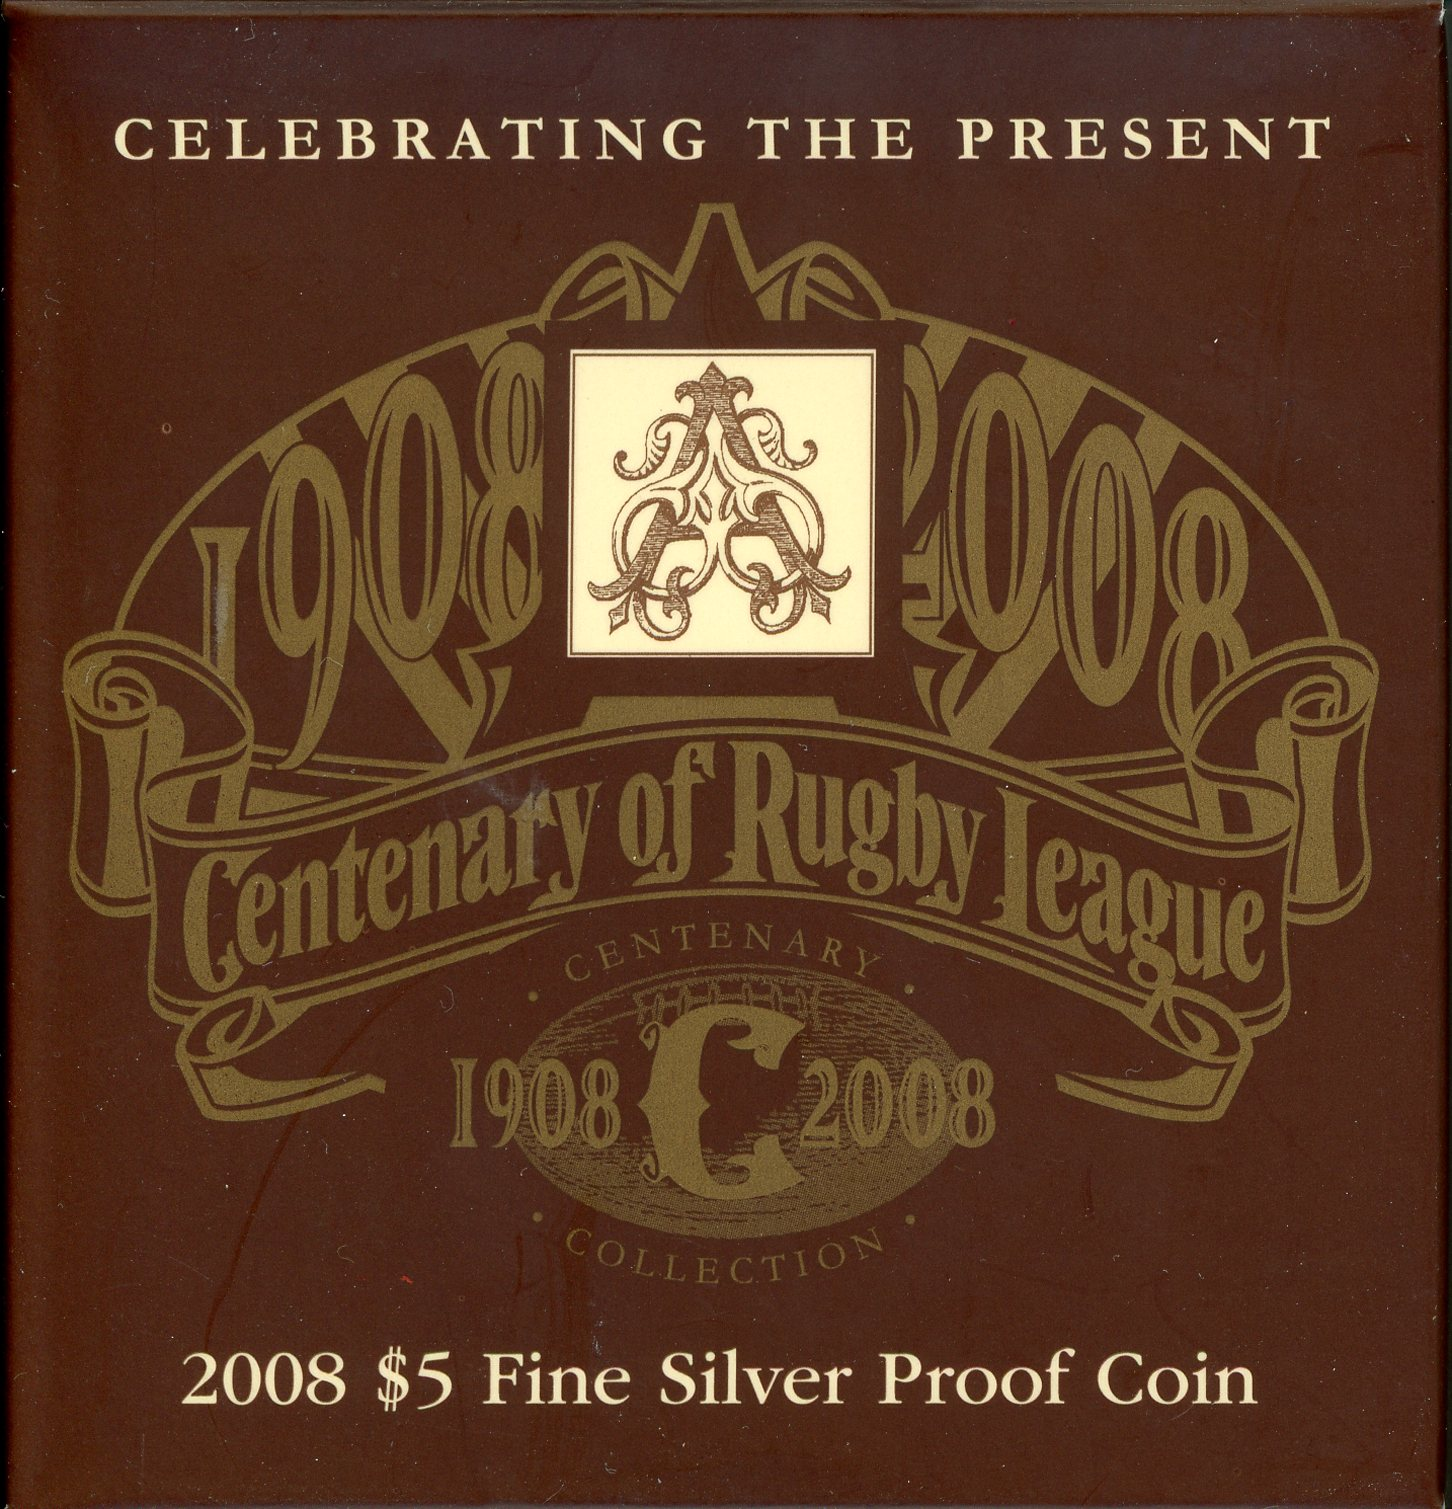 Thumbnail for 2008 Centenary of Rugby League $5 Proof